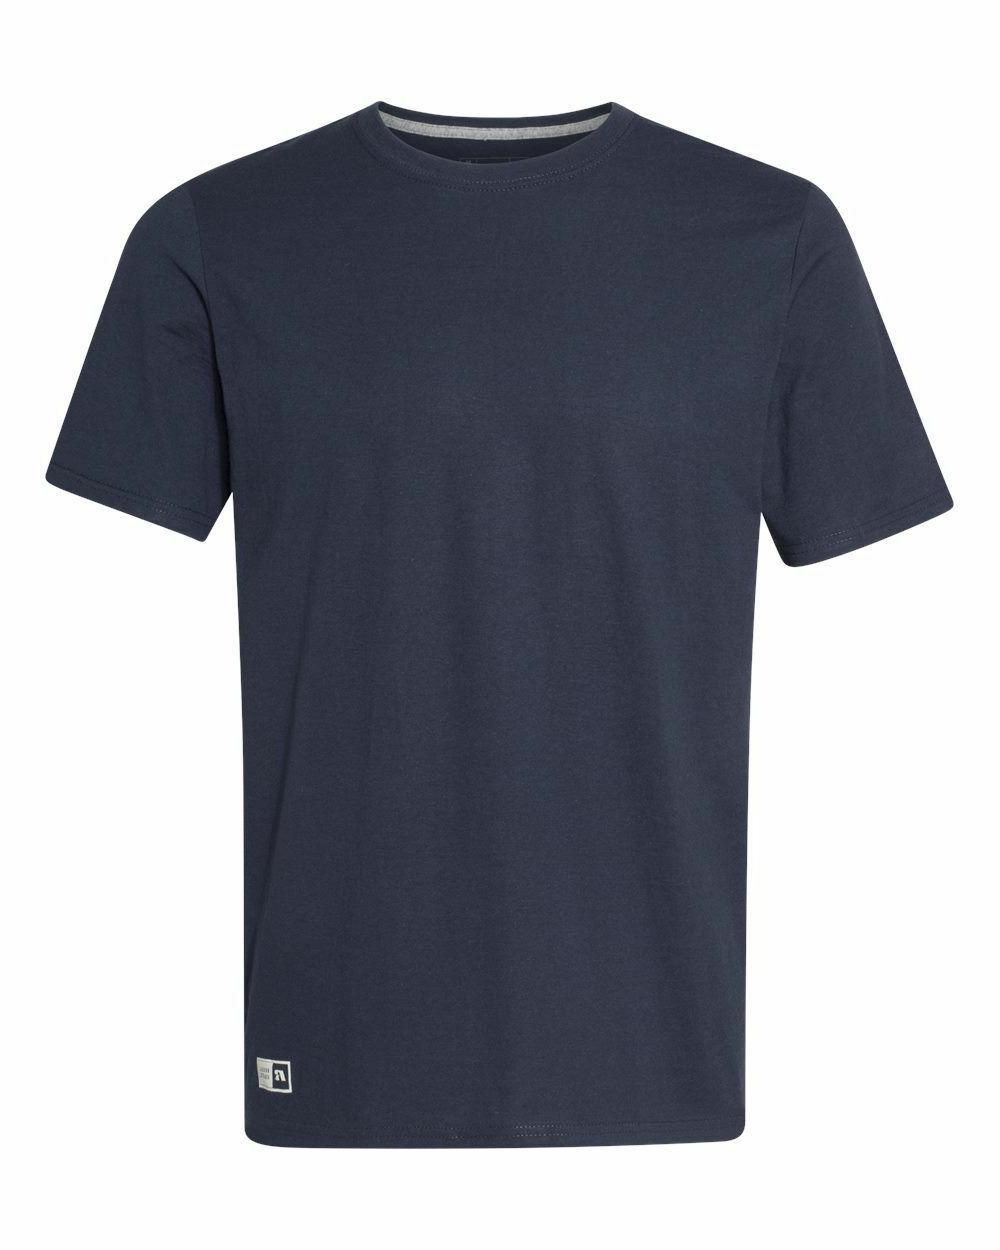 Russell Sports S-3XL